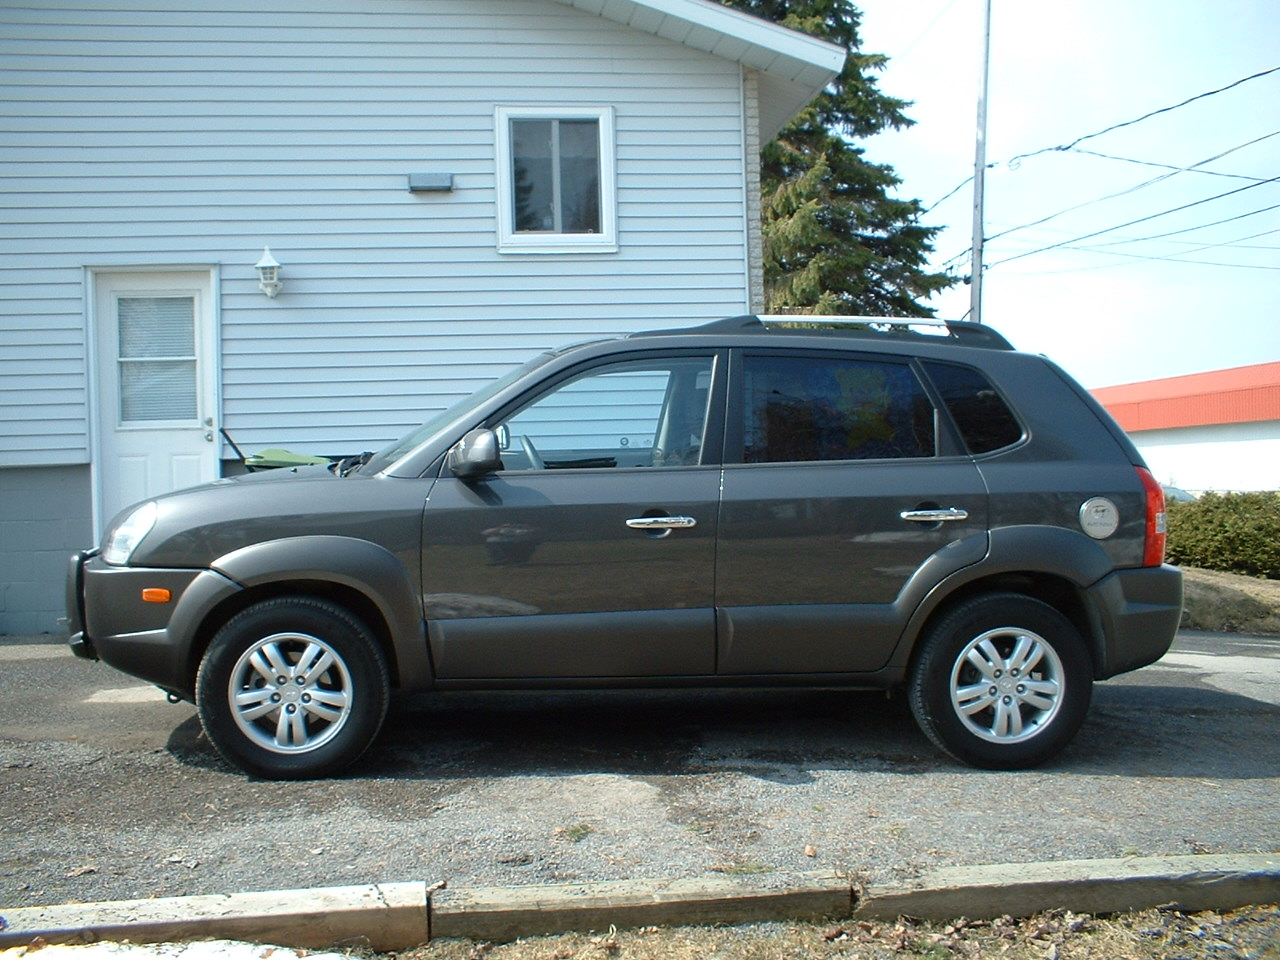 2006 Hyundai Tucson Information And Photos Neo Drive